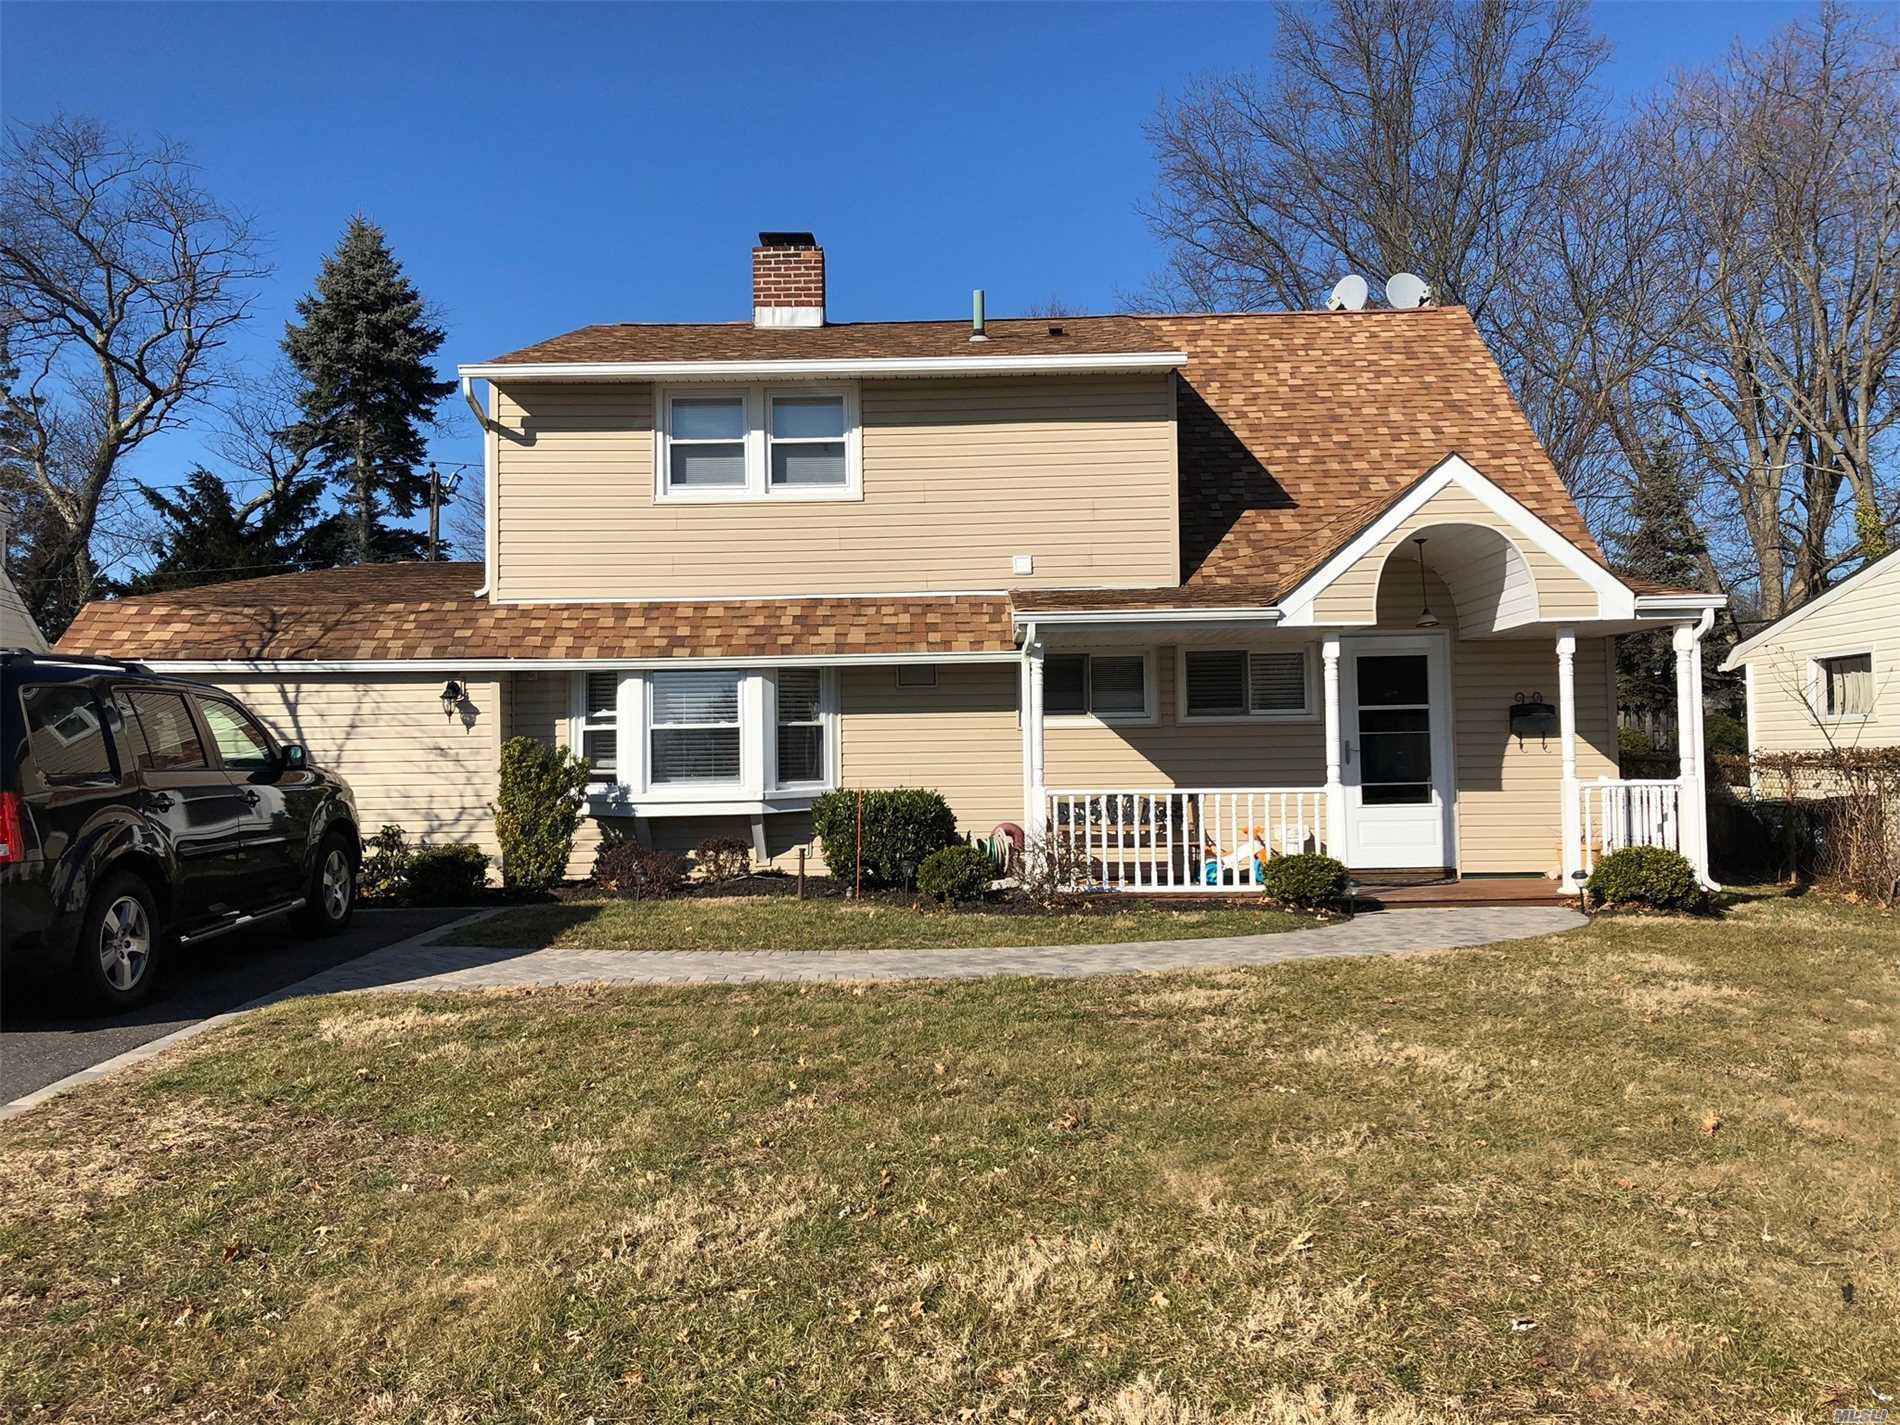 Spacious Updated Home in Salisbury, East Meadow School District. Updated EIK w/ Granite Counter Tops, SS Appliances, Updated Bathroom, 4 BR's, MBR on First Floor Total of 2.5 Baths, FDR, LR/FamRm. Backyard has Koi Pond/Jacuzzi. Potential Mother /Daughter w/ Proper Permits. MUST SEE!